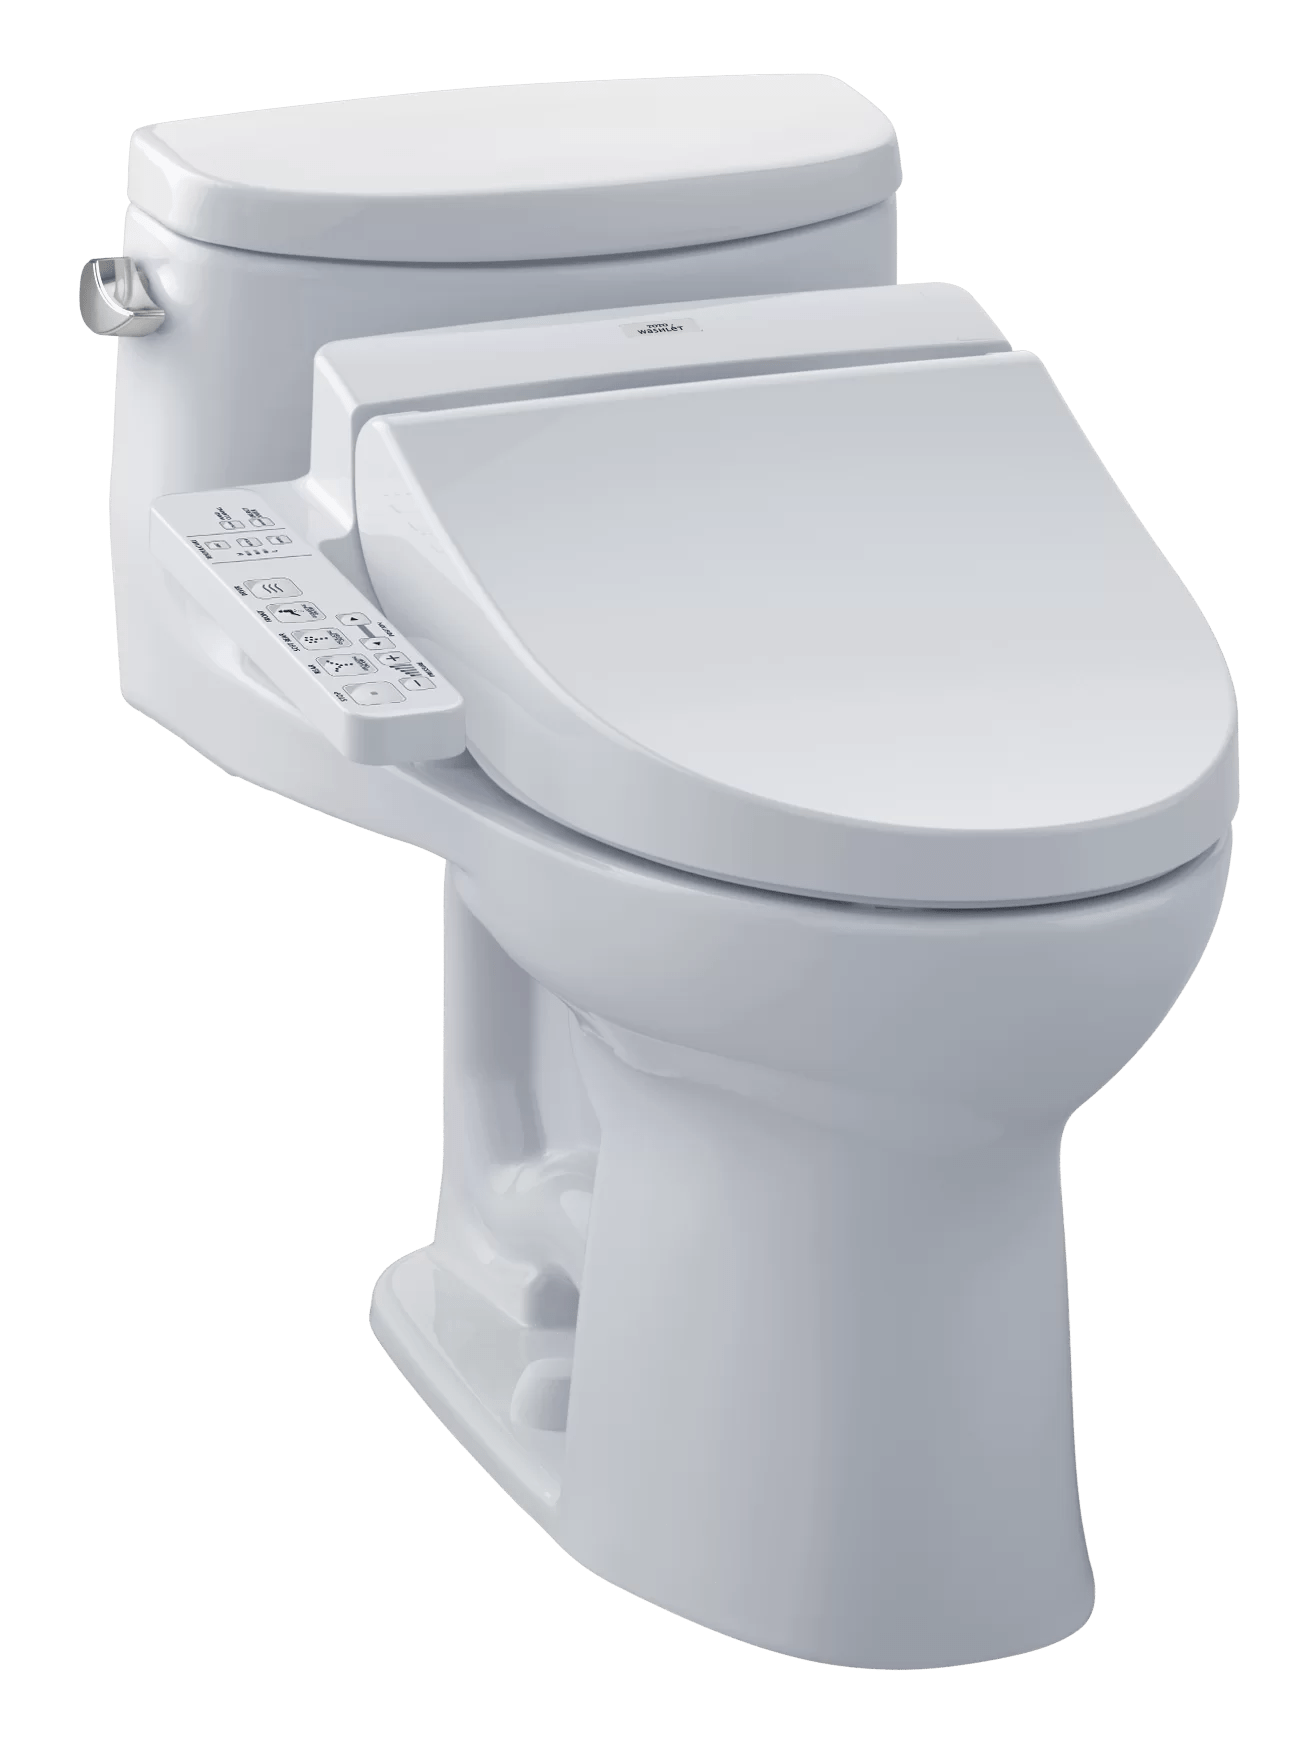 Bidet Toilette Toto Supreme 1 28 Gpf Elongated One Piece Toilet With C100